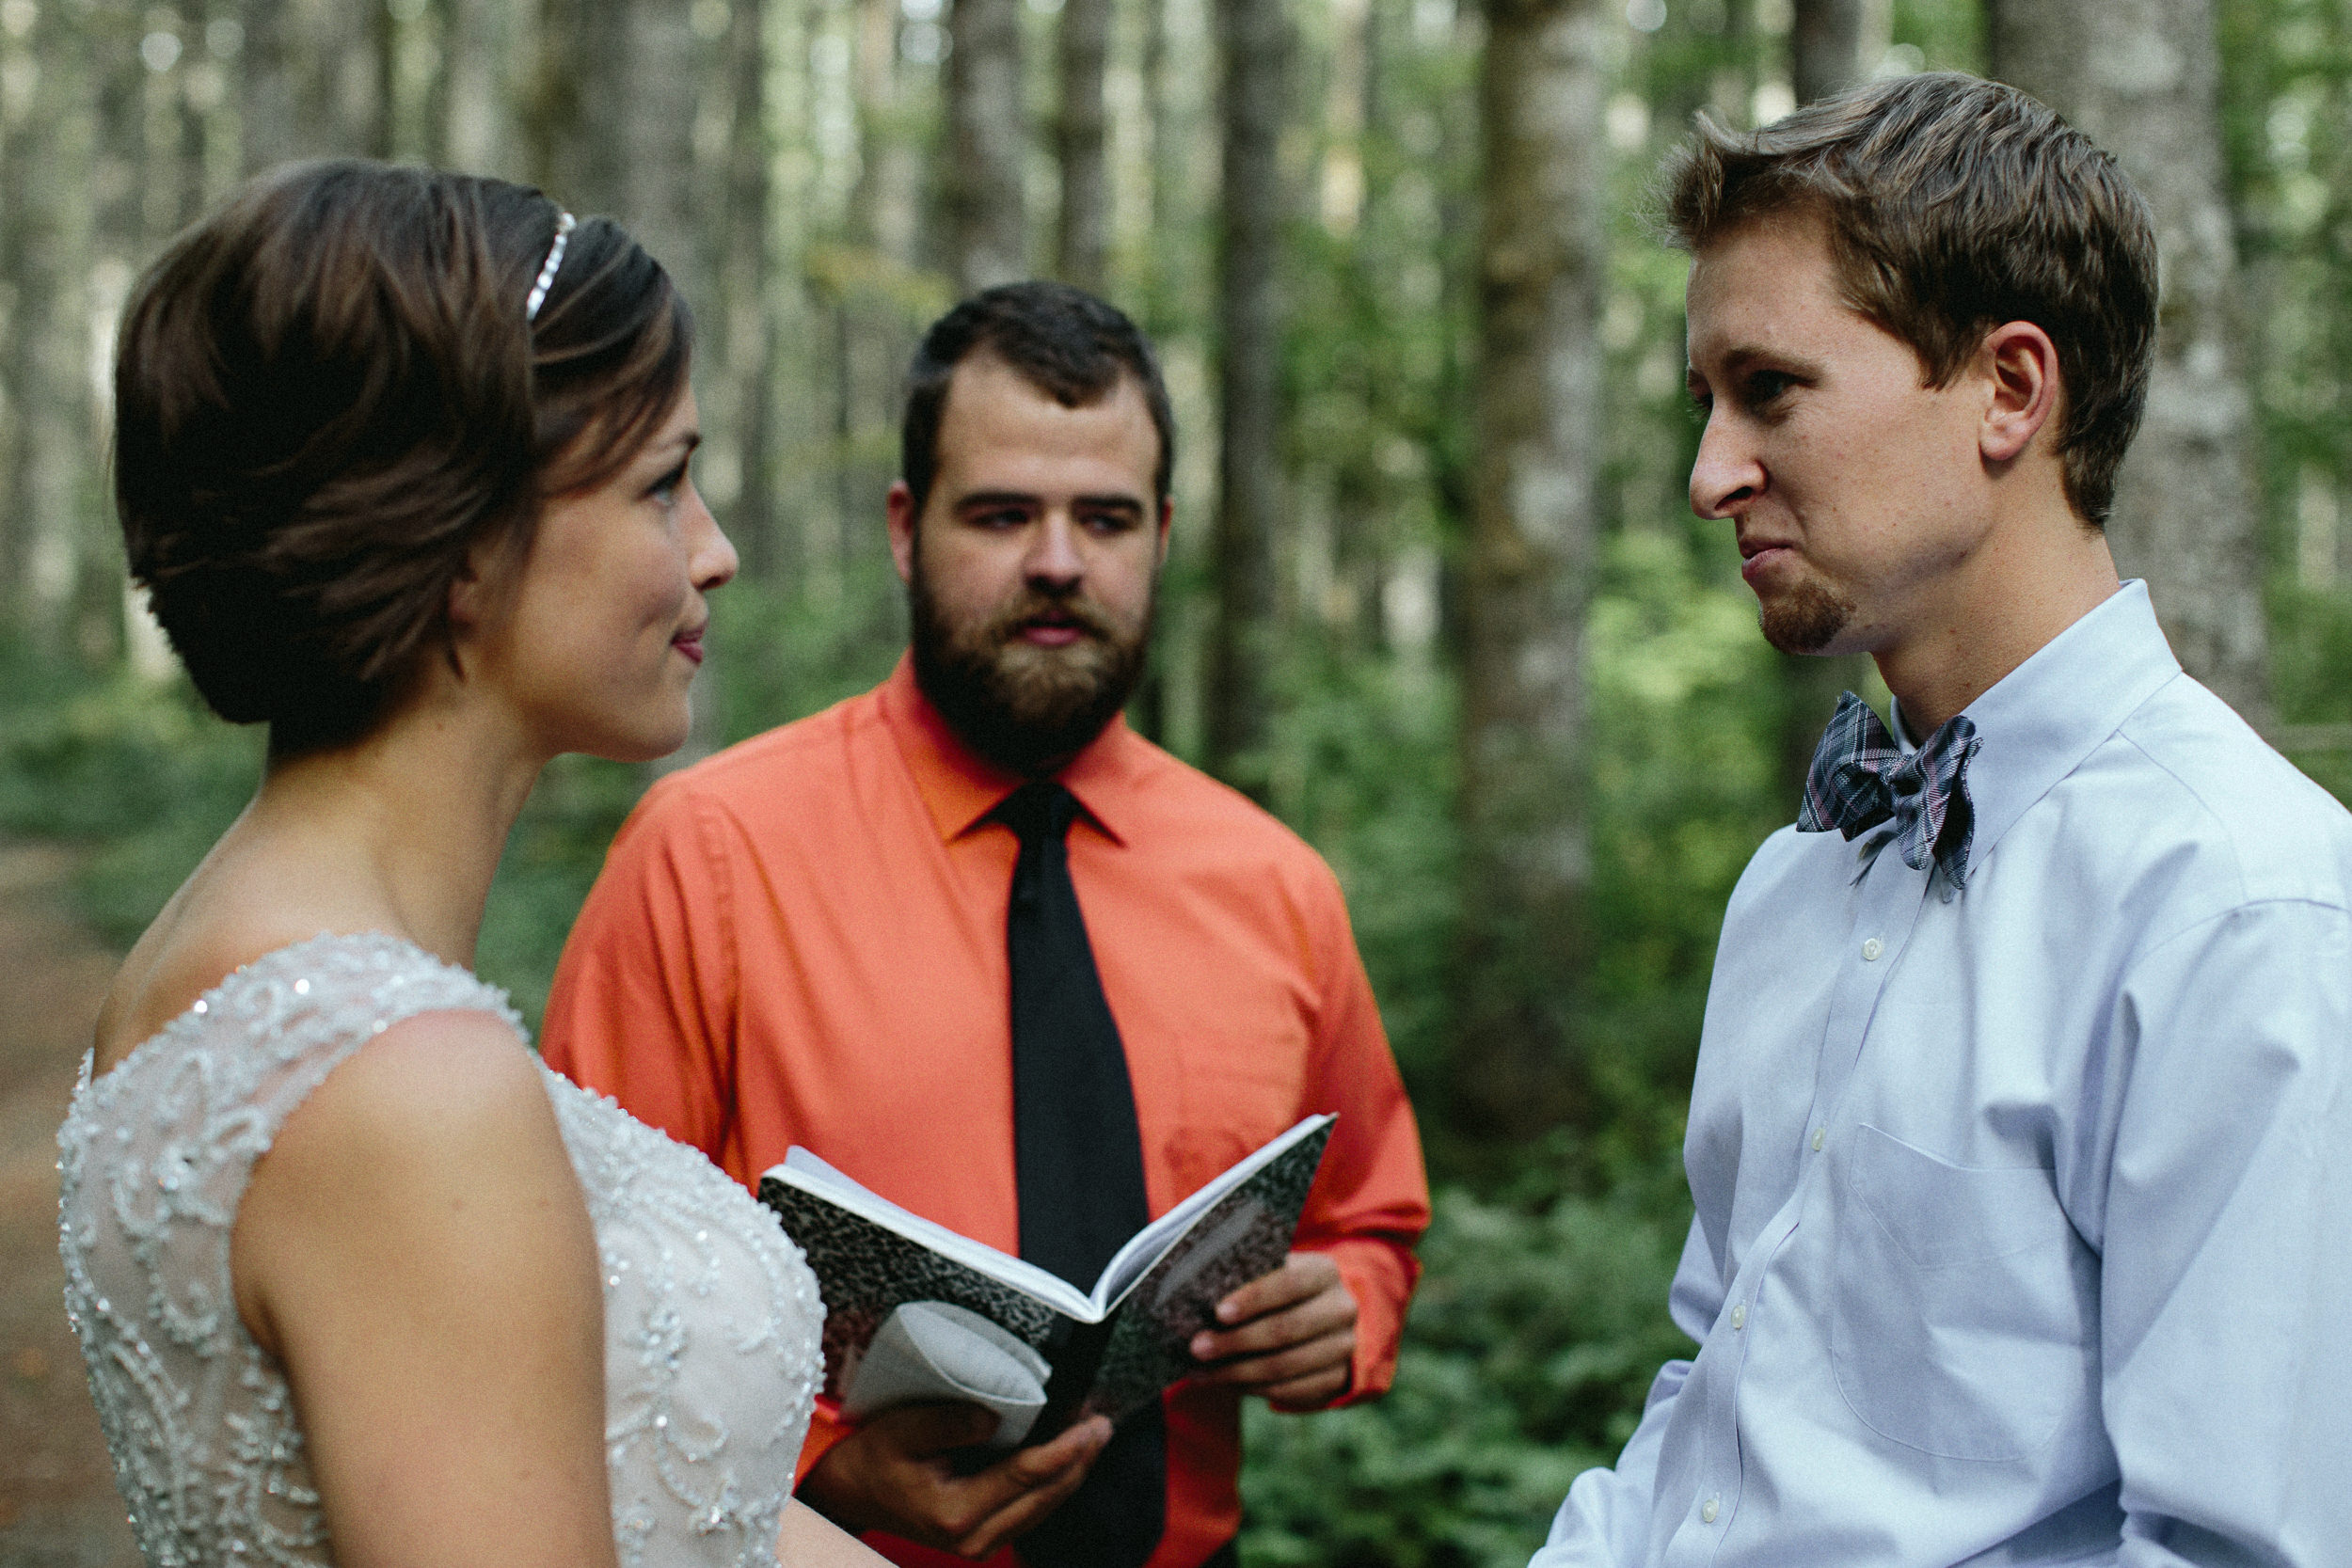 Ibride reading vows during an elopement in a forest cathedral on rattlesnake ridge